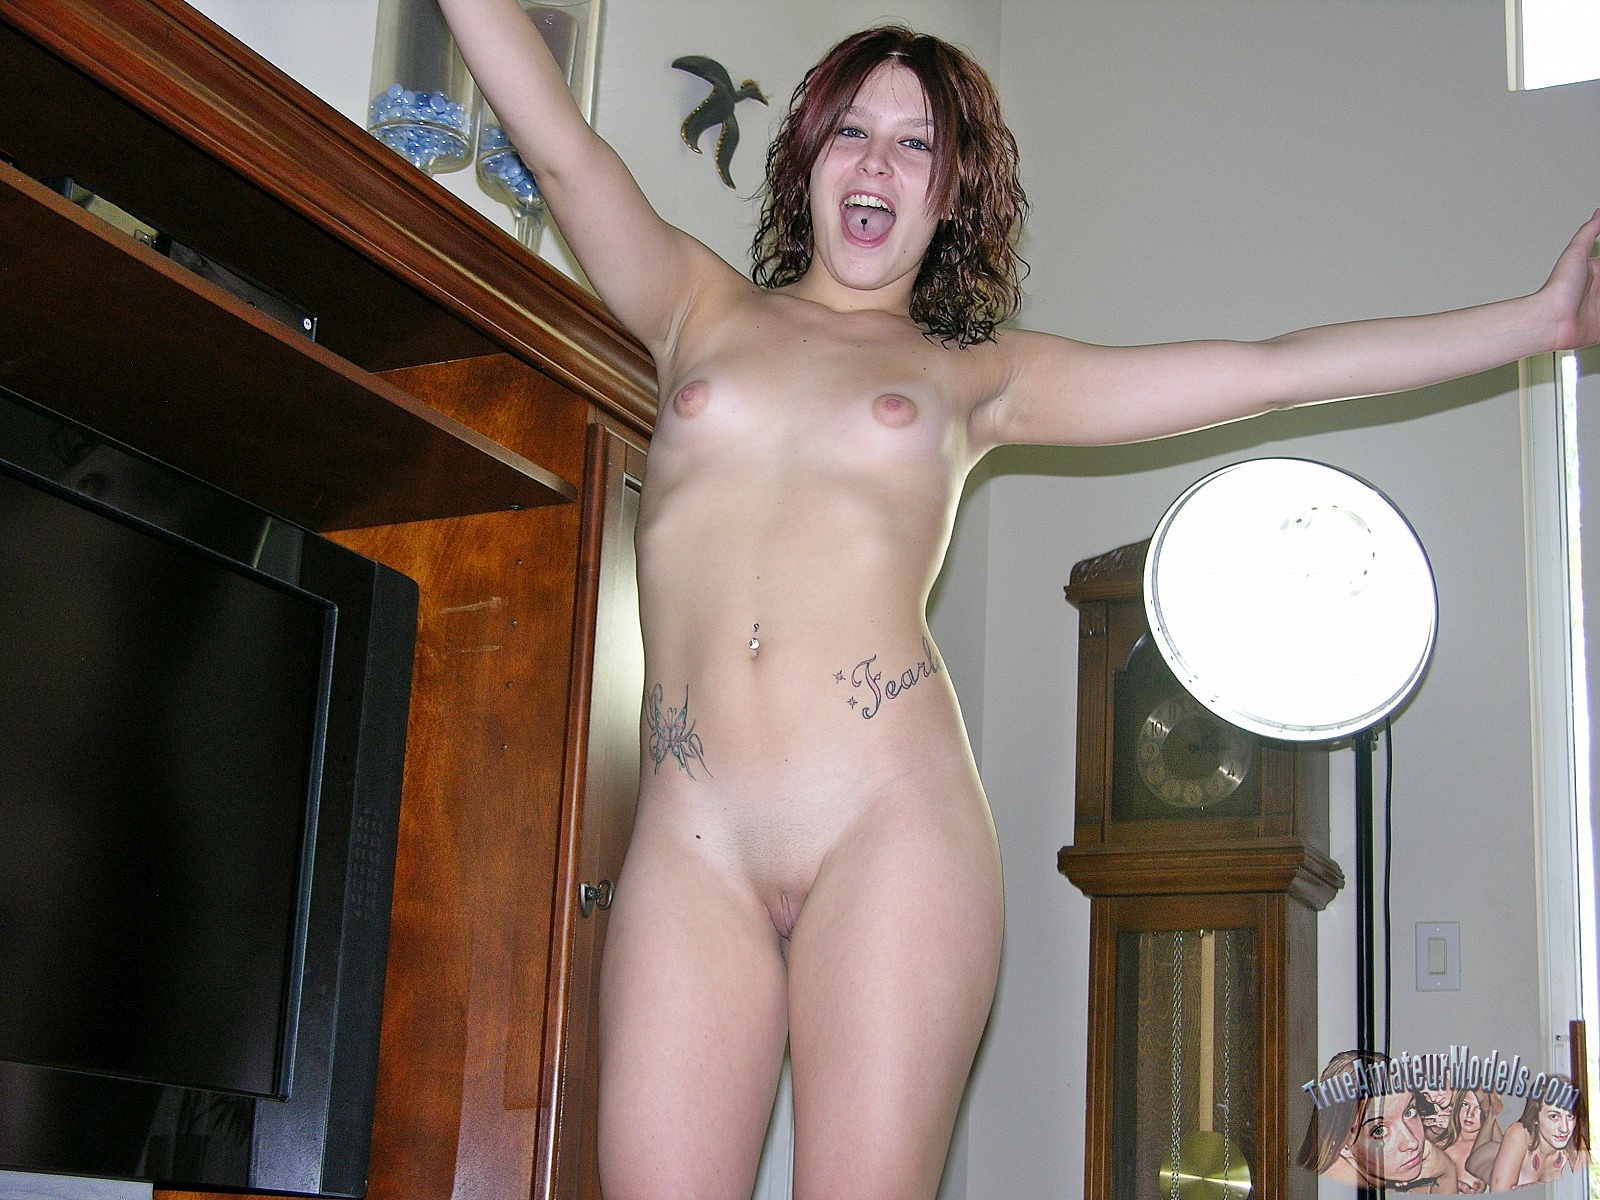 model shoot amateur Nude first photo